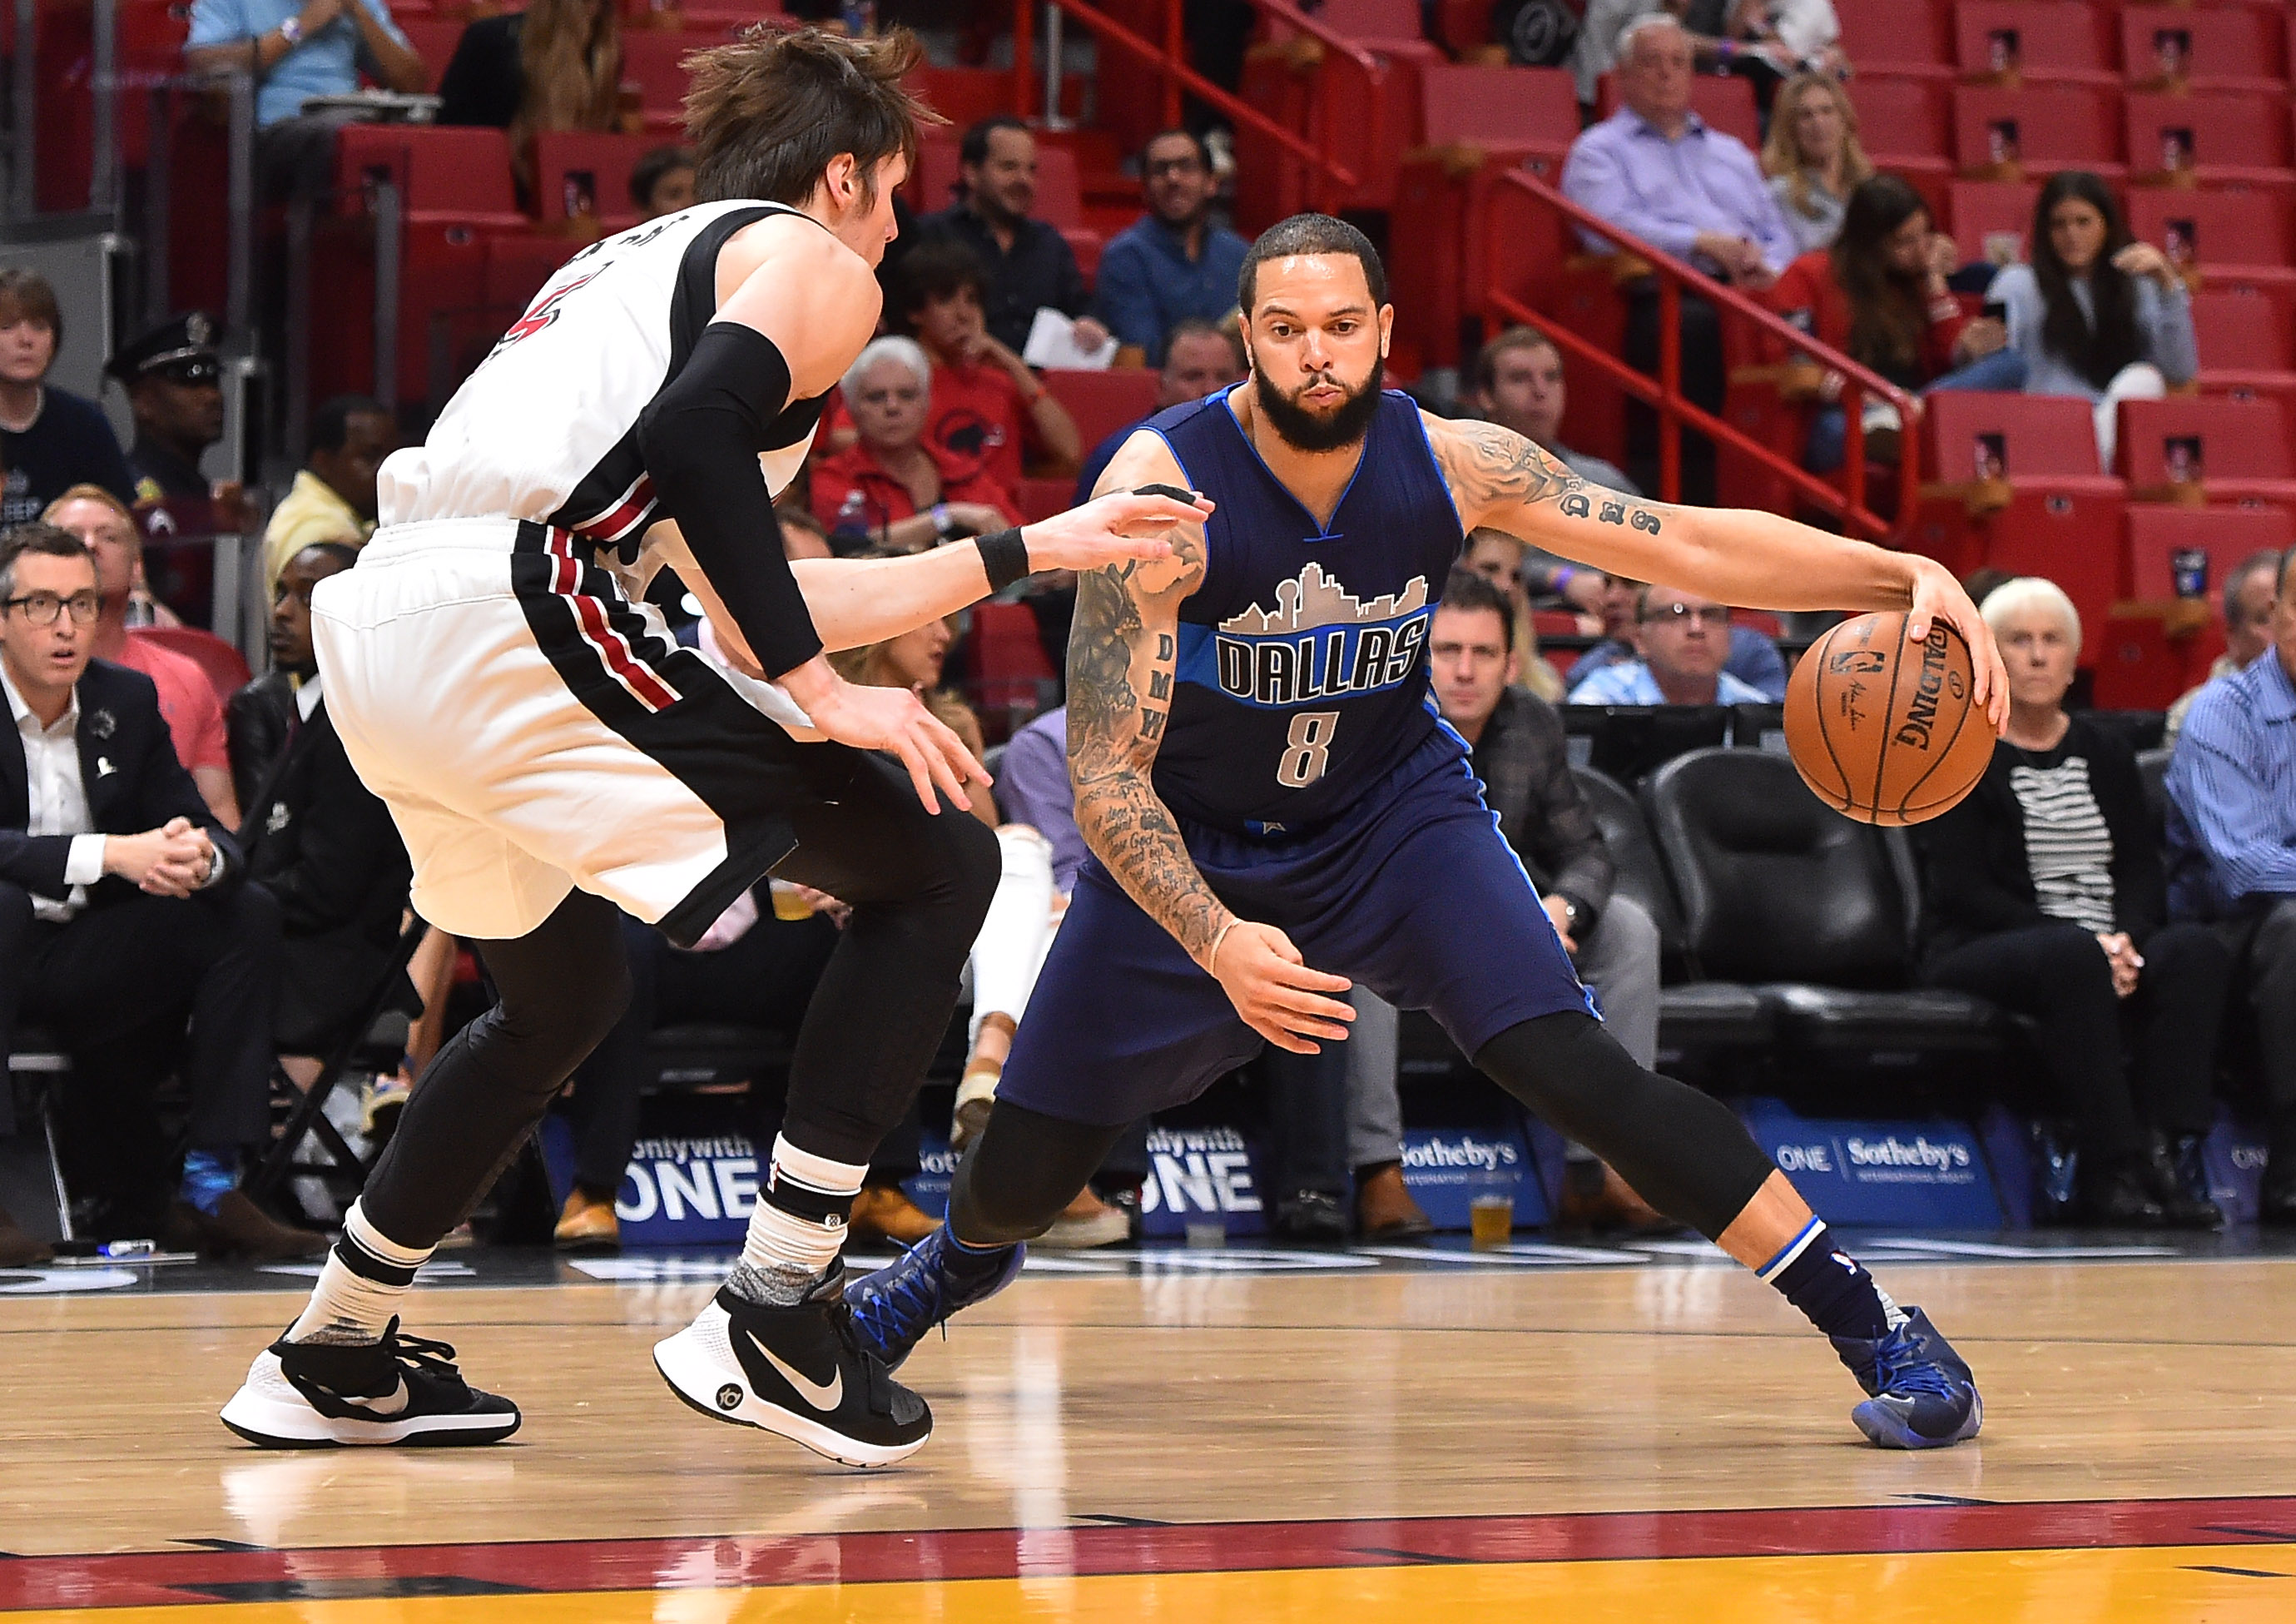 Jan 19, 2017; Miami, FL, USA; Dallas Mavericks guard Deron Williams (8) drives the ball around Miami Heat forward Luke Babbitt (5) during the first half at American Airlines Arena. Mandatory Credit: Jasen Vinlove-USA TODAY Sports